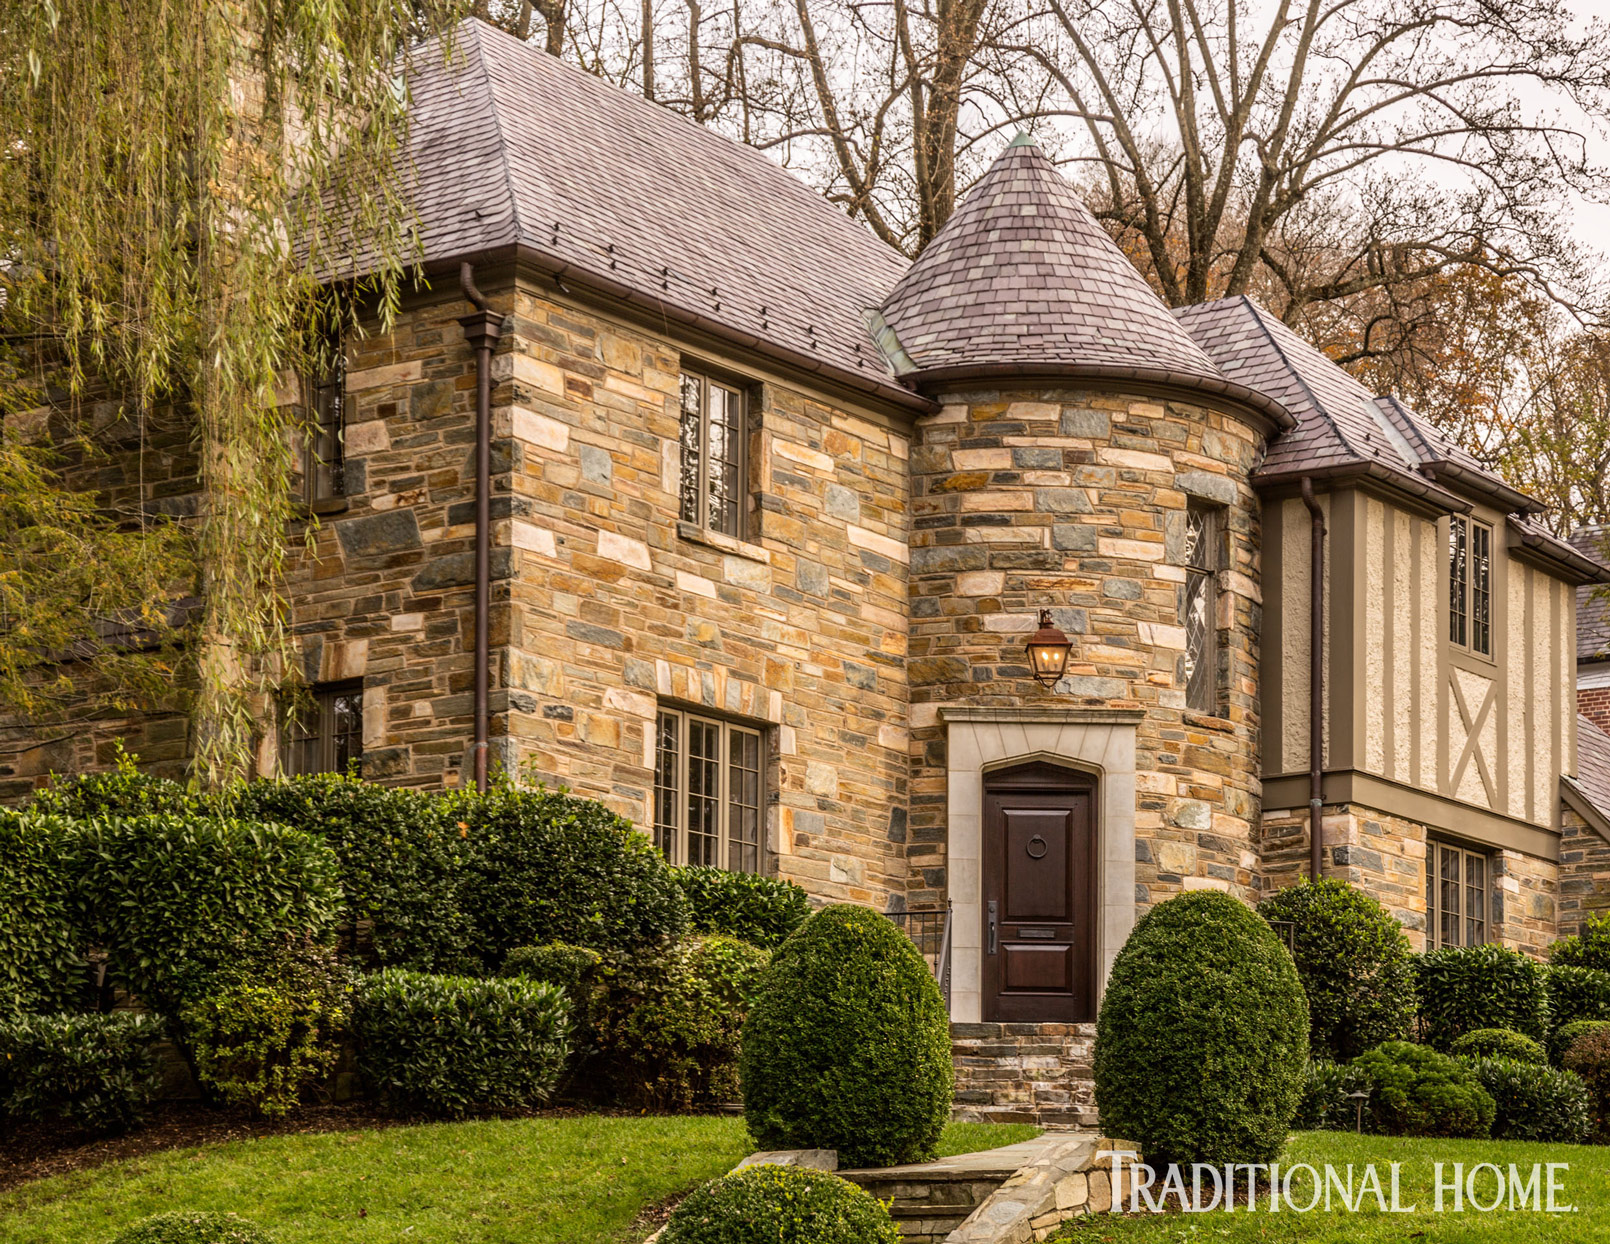 stone tudor home exterior with trimmed hedges